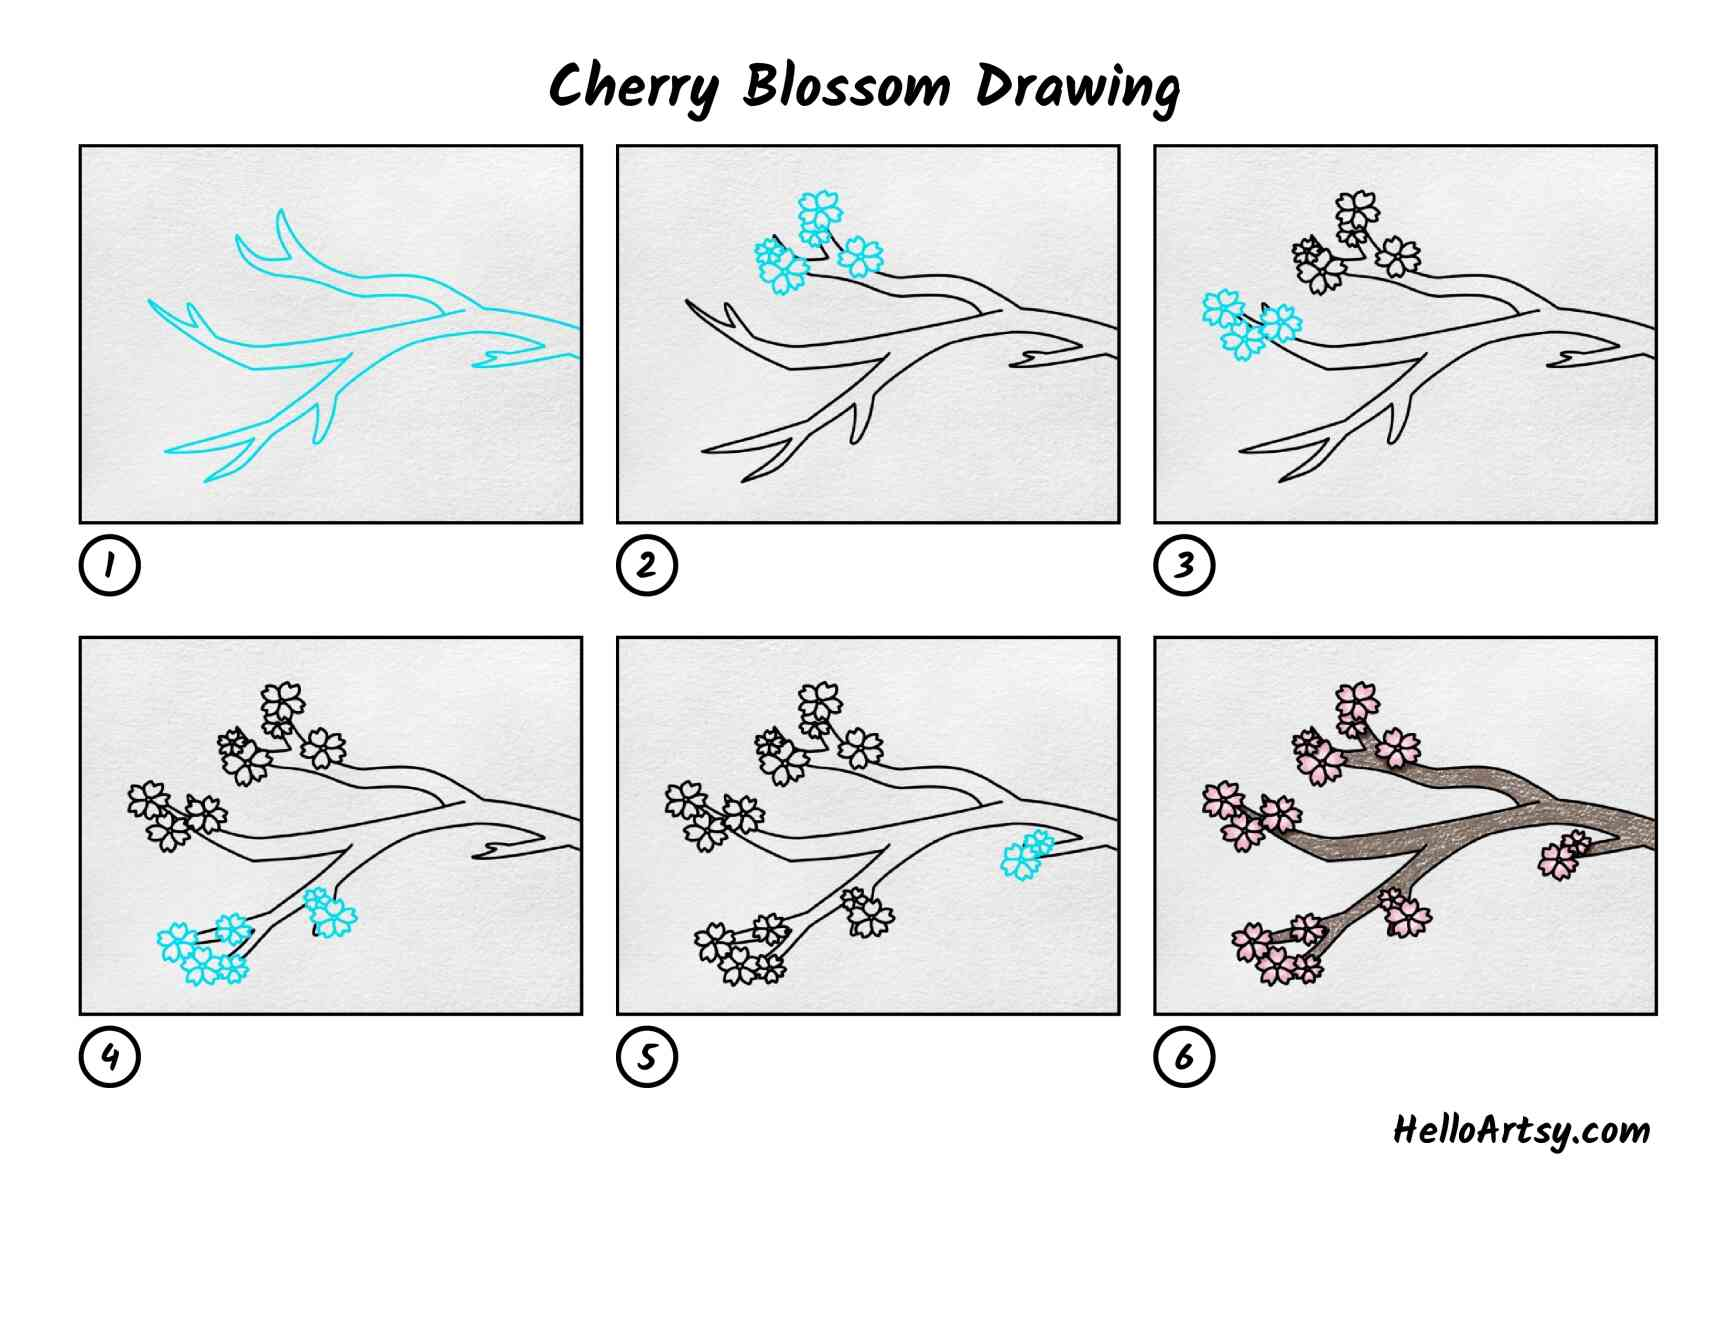 Cherry Blossom Drawing: All Steps